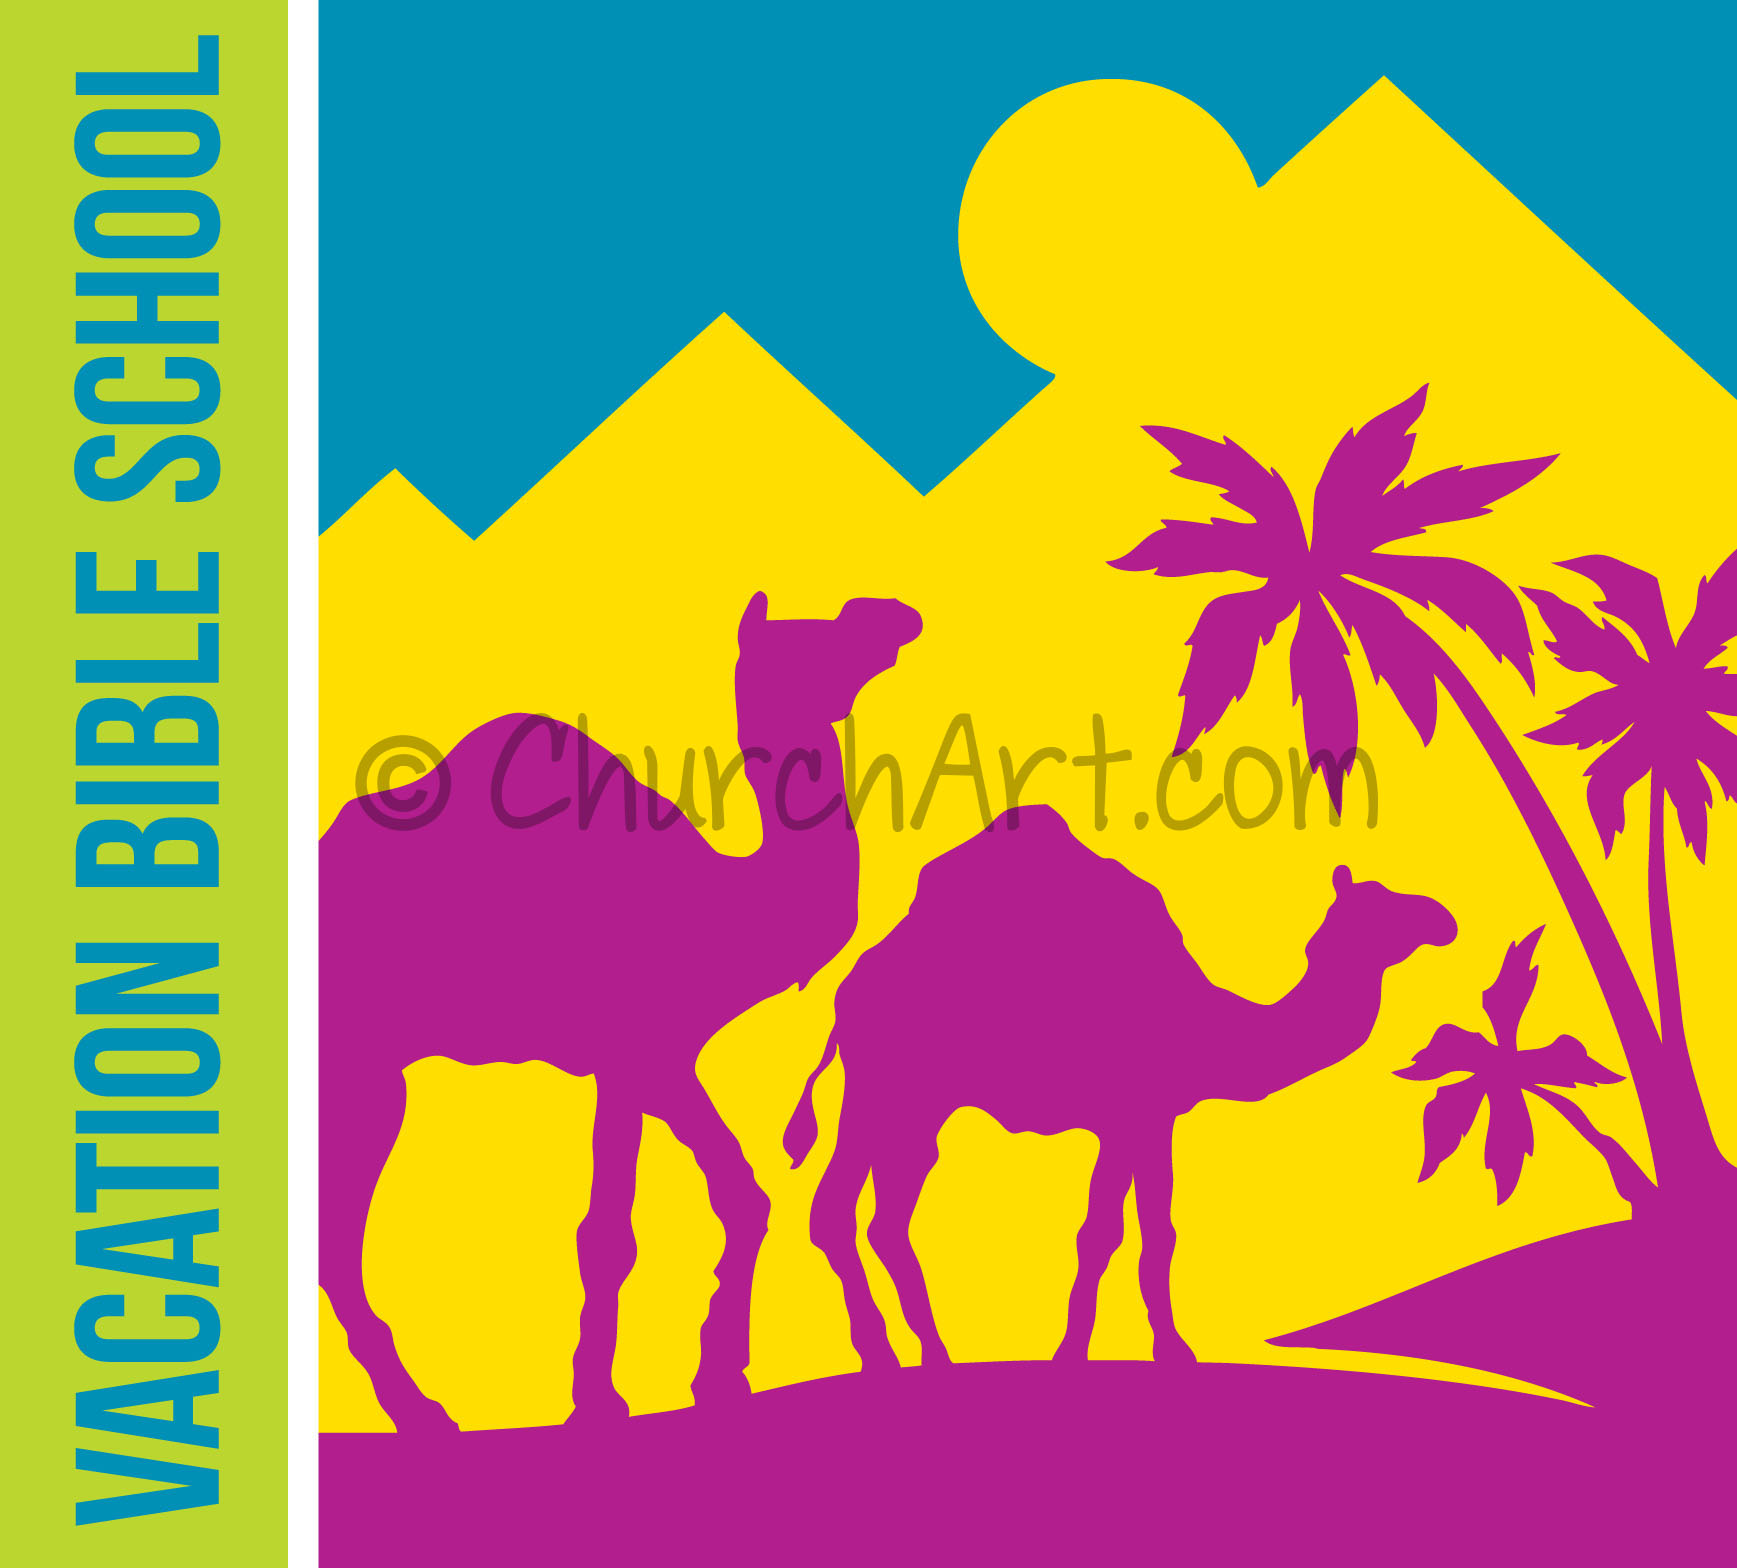 Vacation Bible School Clip-Art with camels, pyramids, palm trees and VACATION BIBLE SCHOOL caption